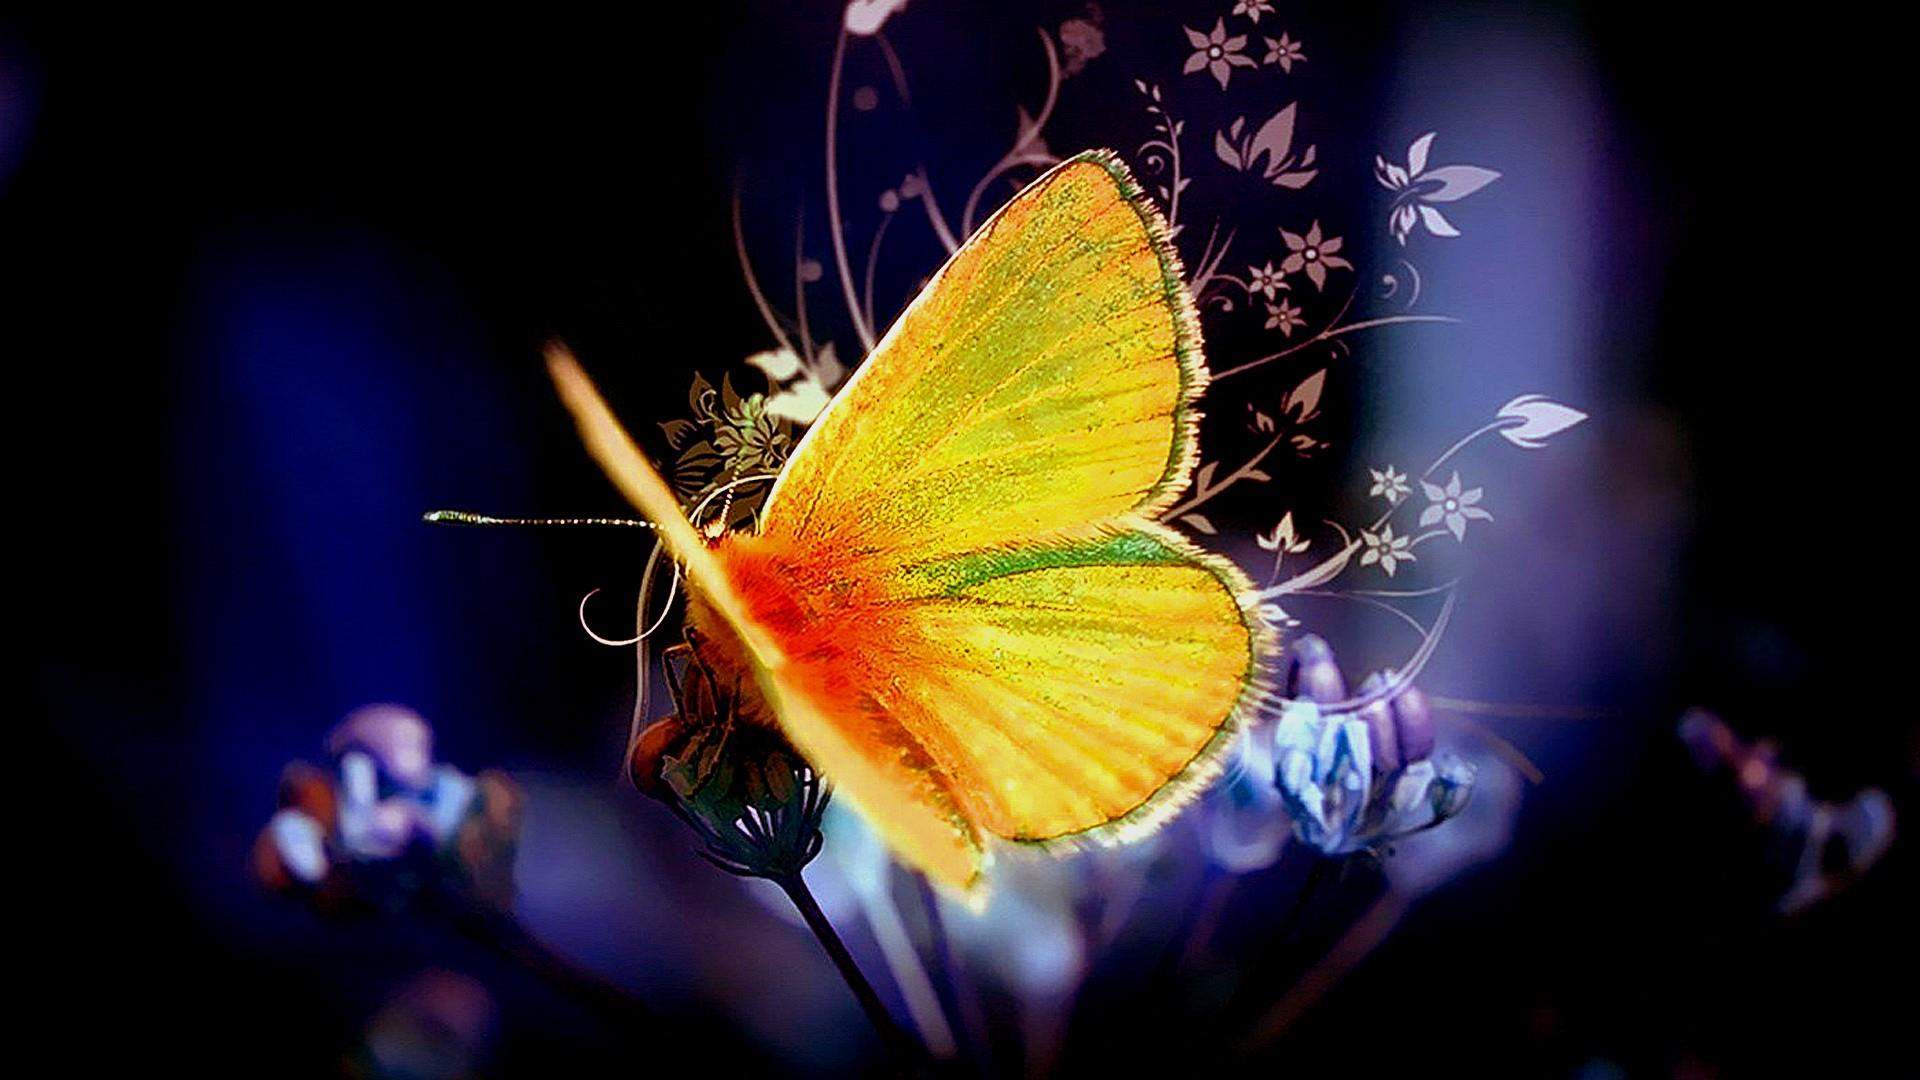 Butterfly Wallpaper - Animated Butterfly Pics With Background , HD Wallpaper & Backgrounds